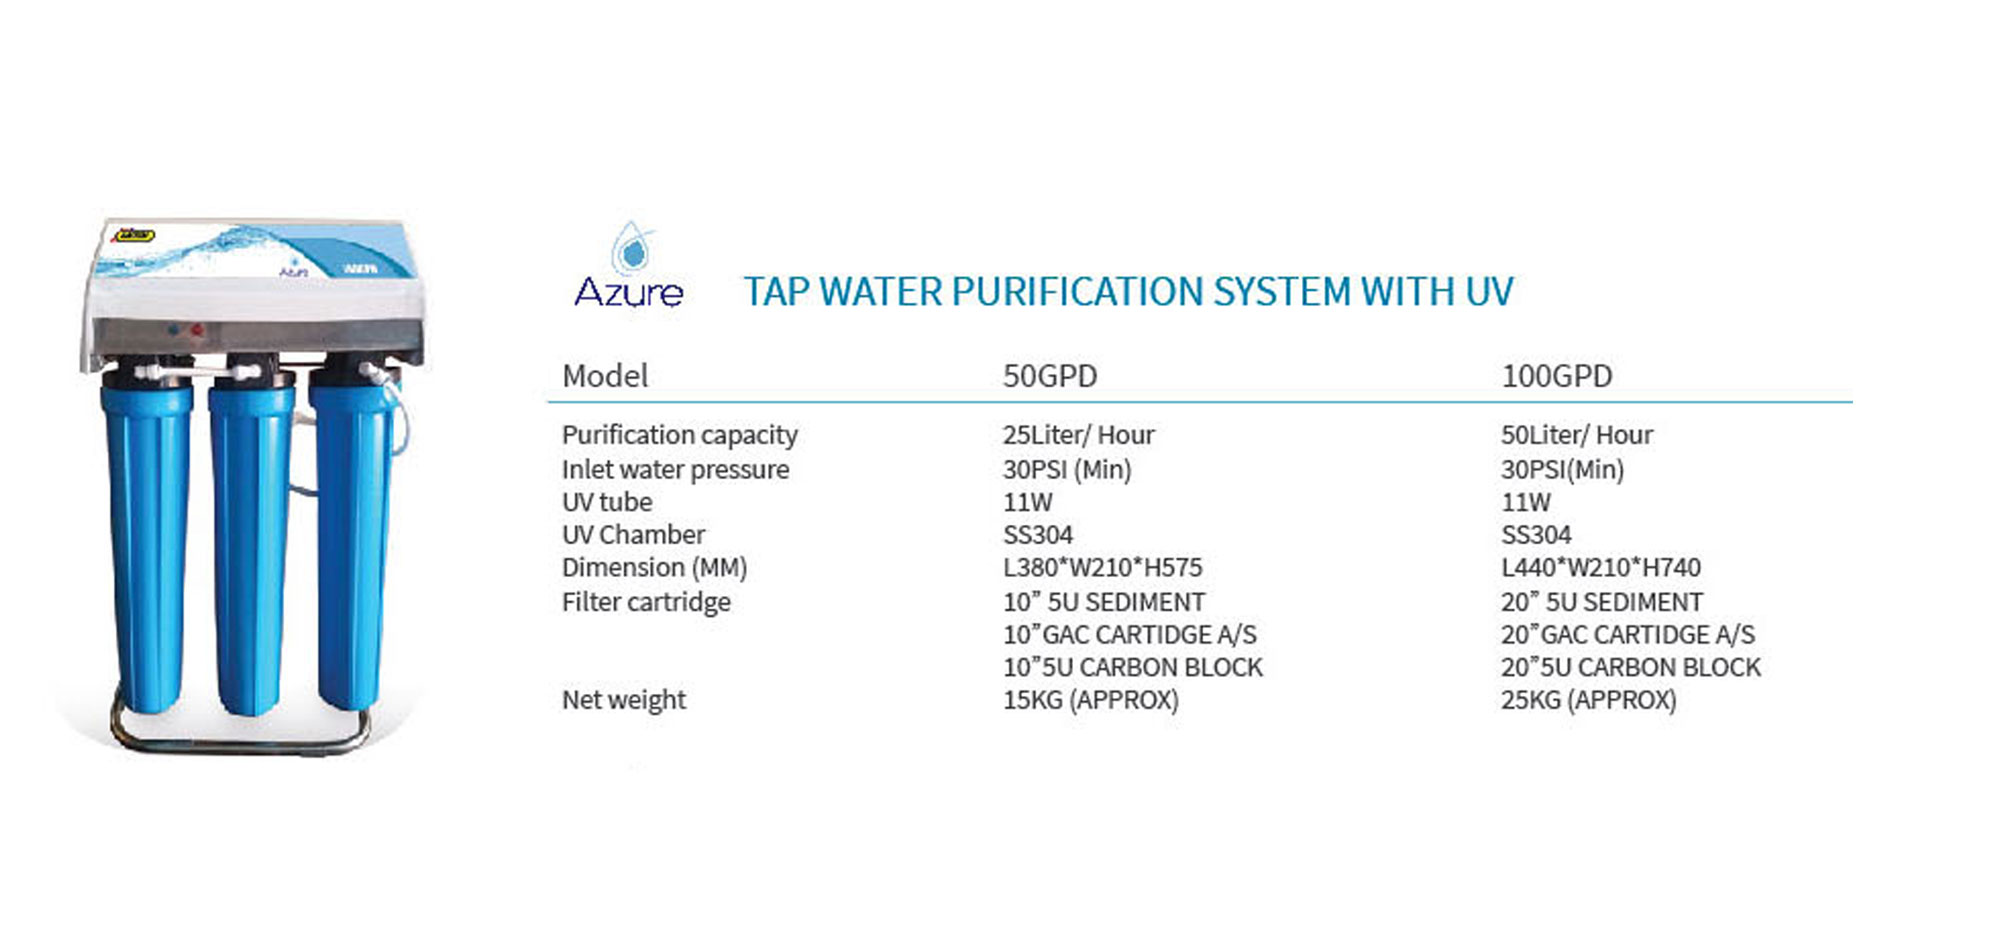 Tap water purification system with UV